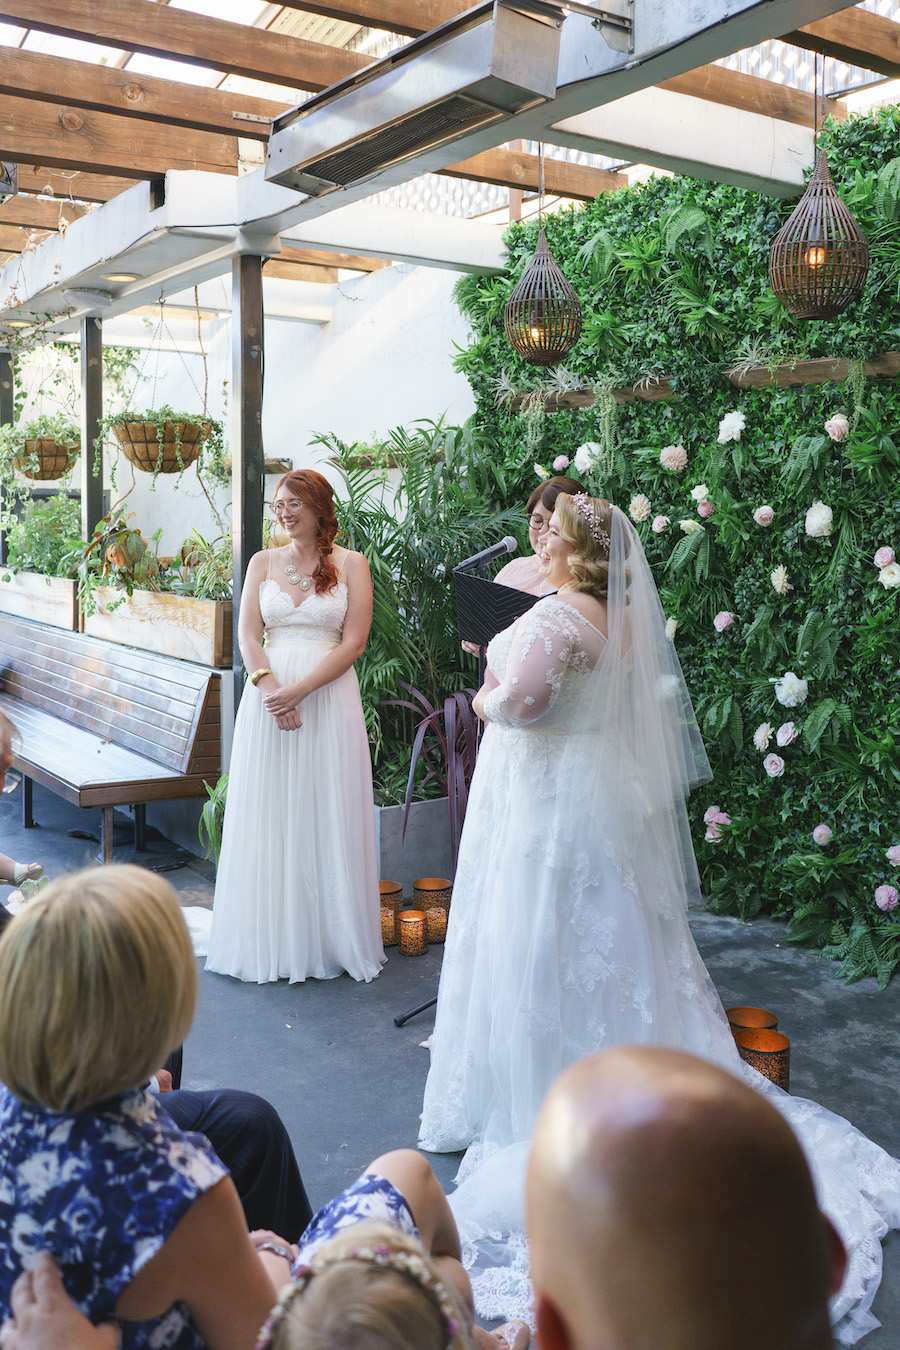 brides getting married at madera kitchen la